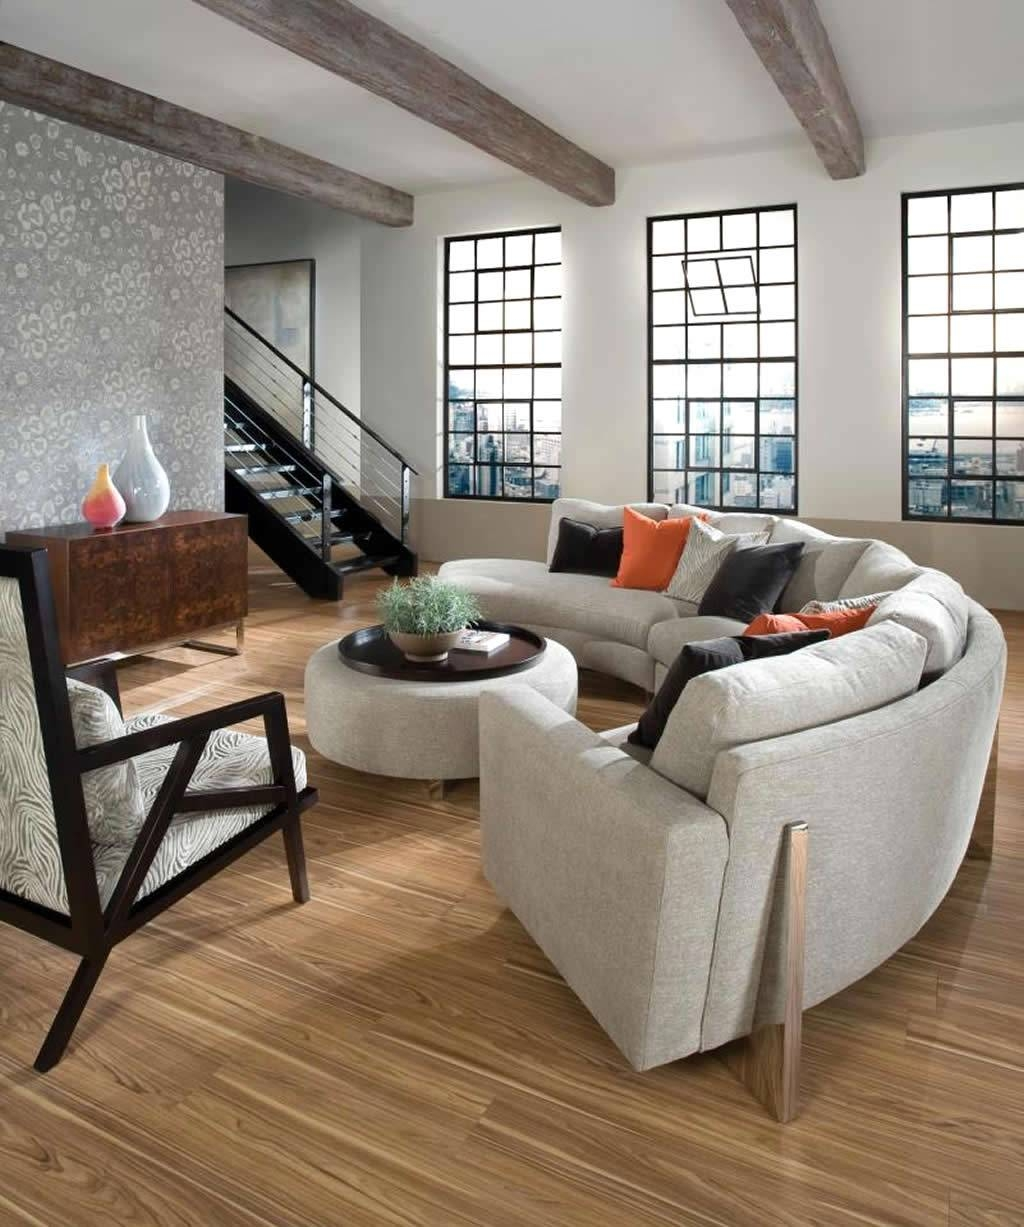 Cute Living Room Decorating Ideas Sectional Sofa With Home regarding Decorating With A Sectional Sofa (Image 16 of 30)